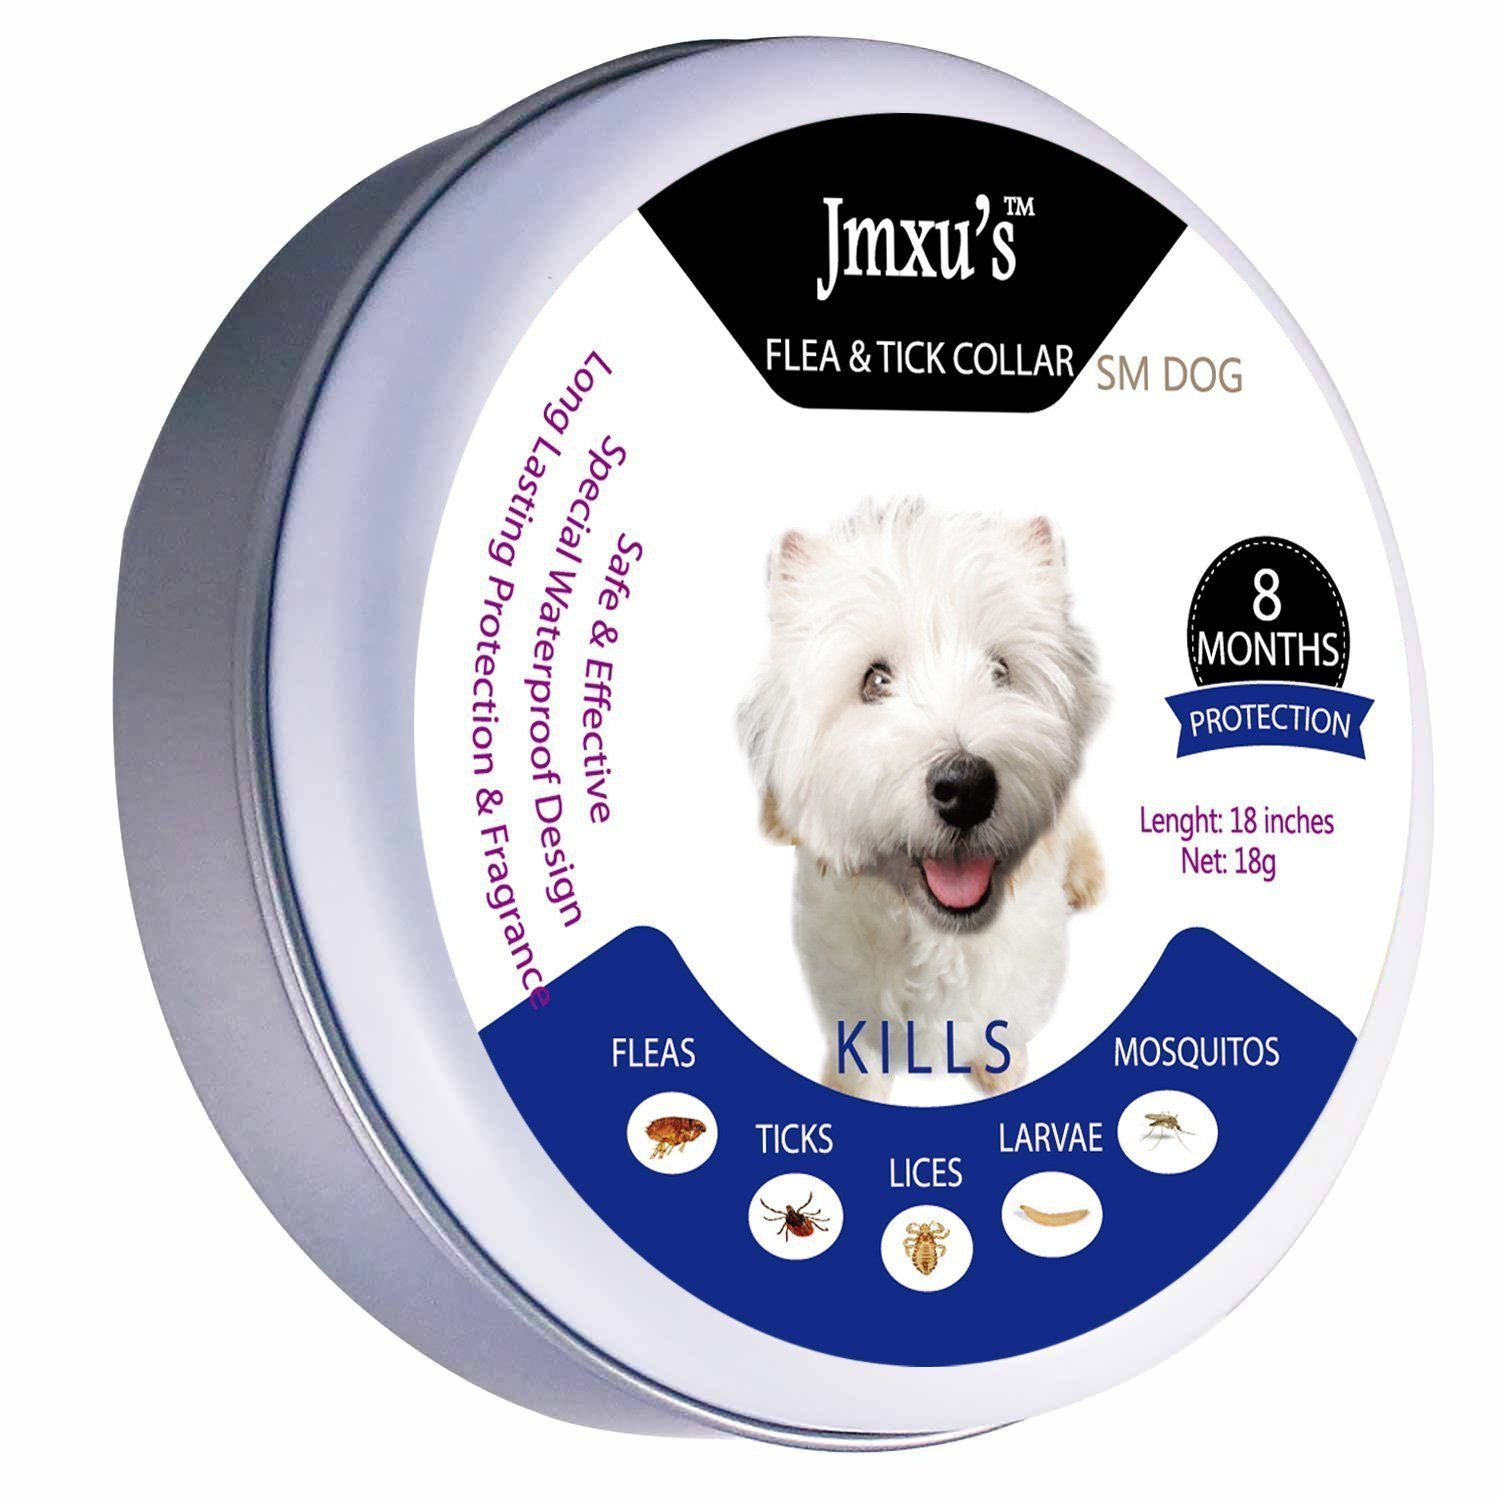 Jmxu's Flea and Tick Prevention for Dogs and Cats, Flea